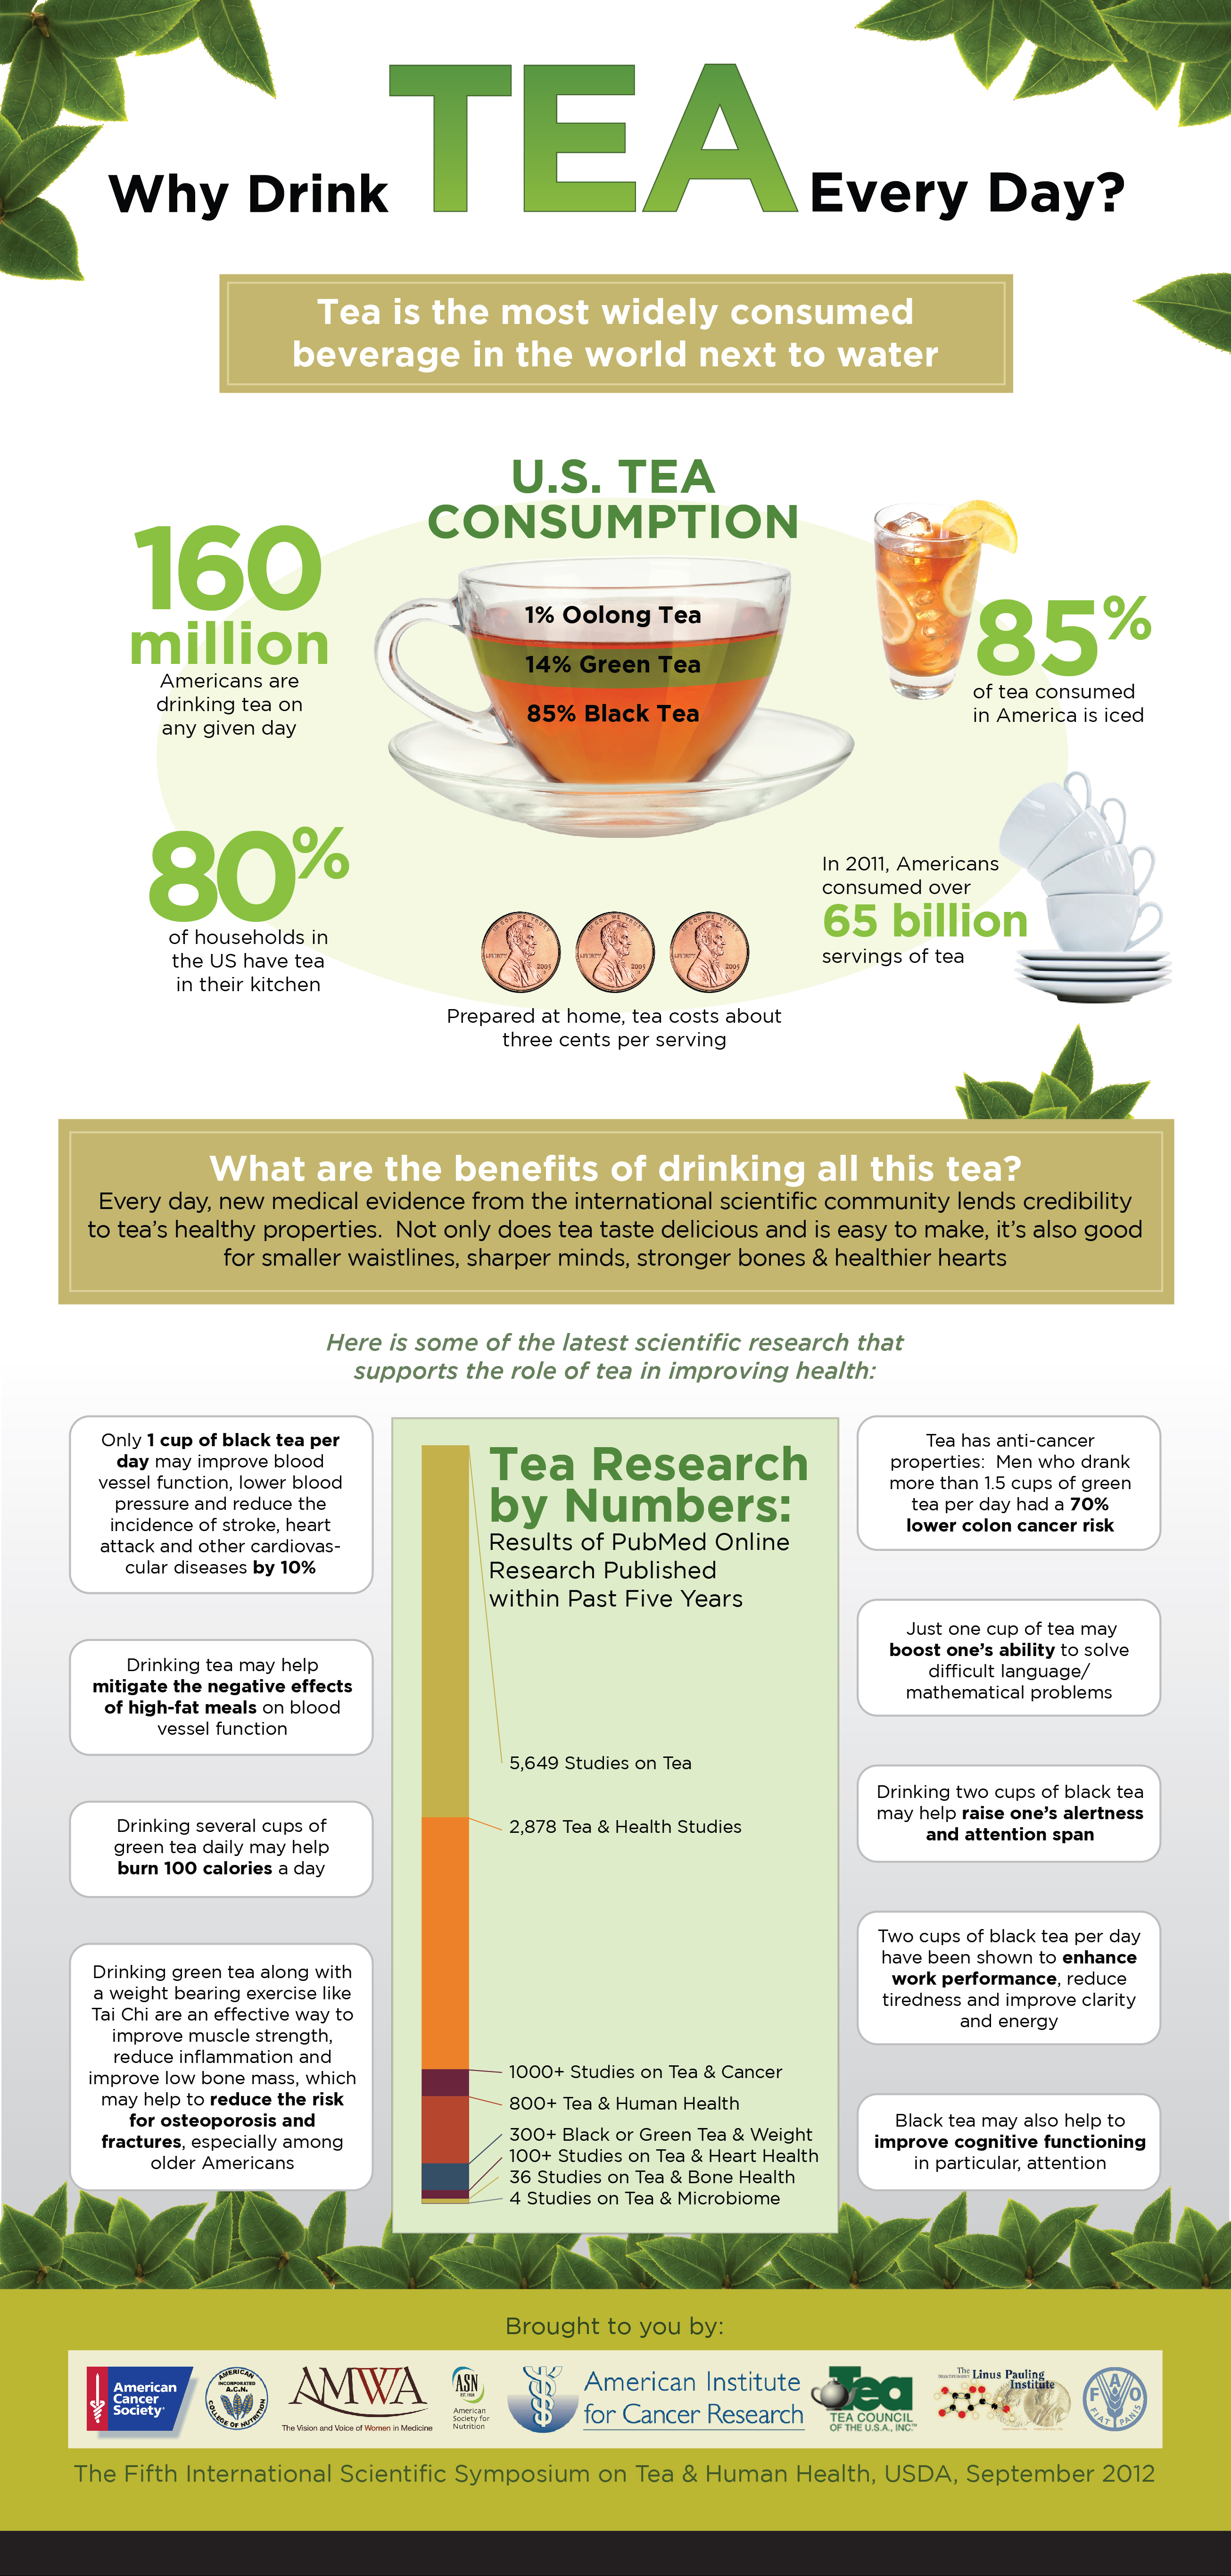 Why Drink Tea Every Day